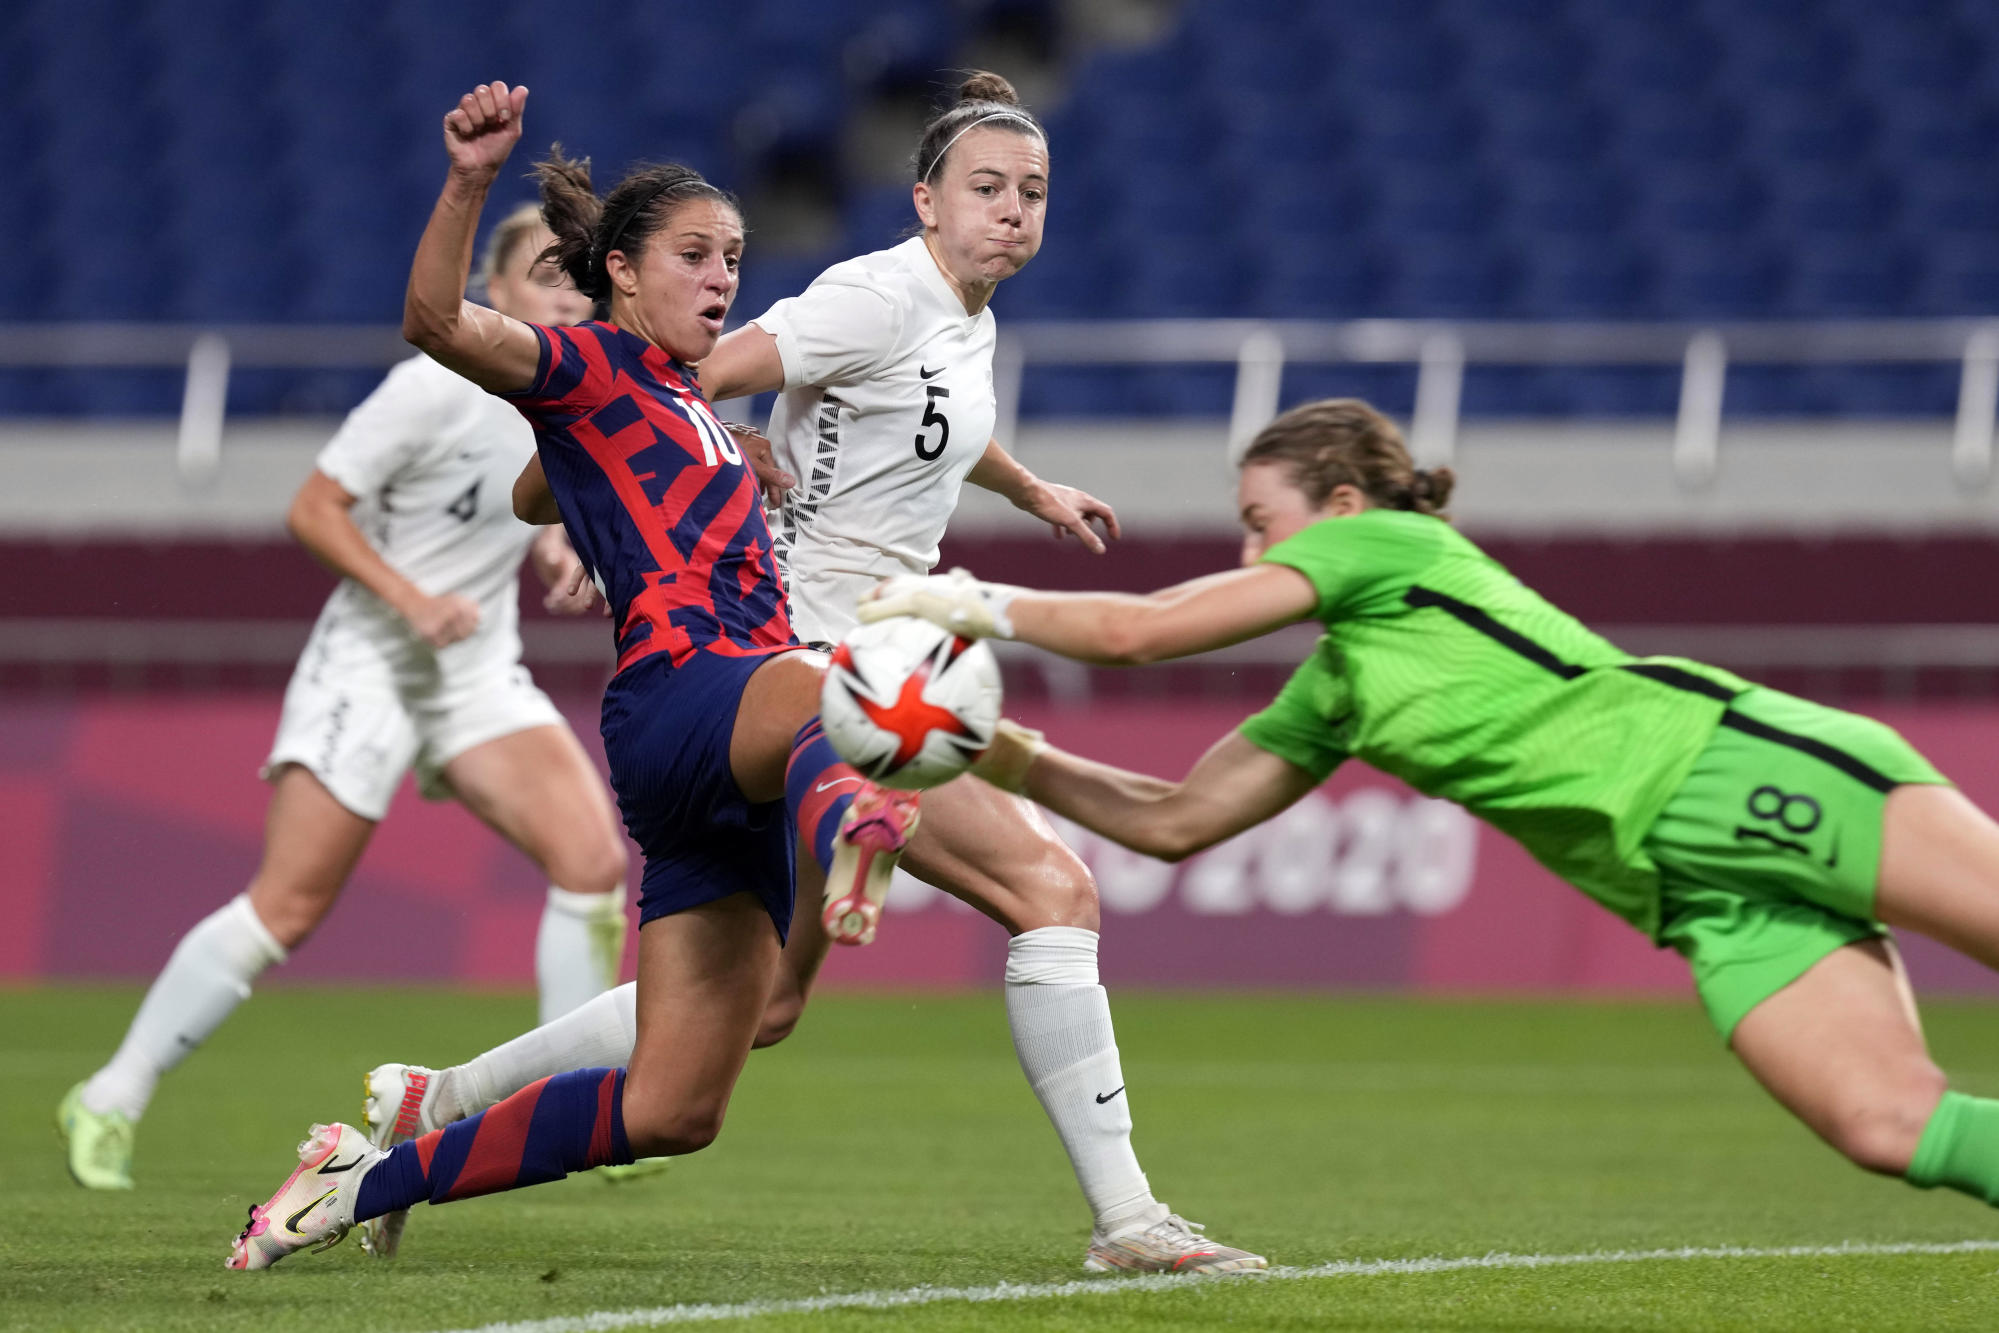 Image Lloyd navigates her 4th Olympics for the US women's team